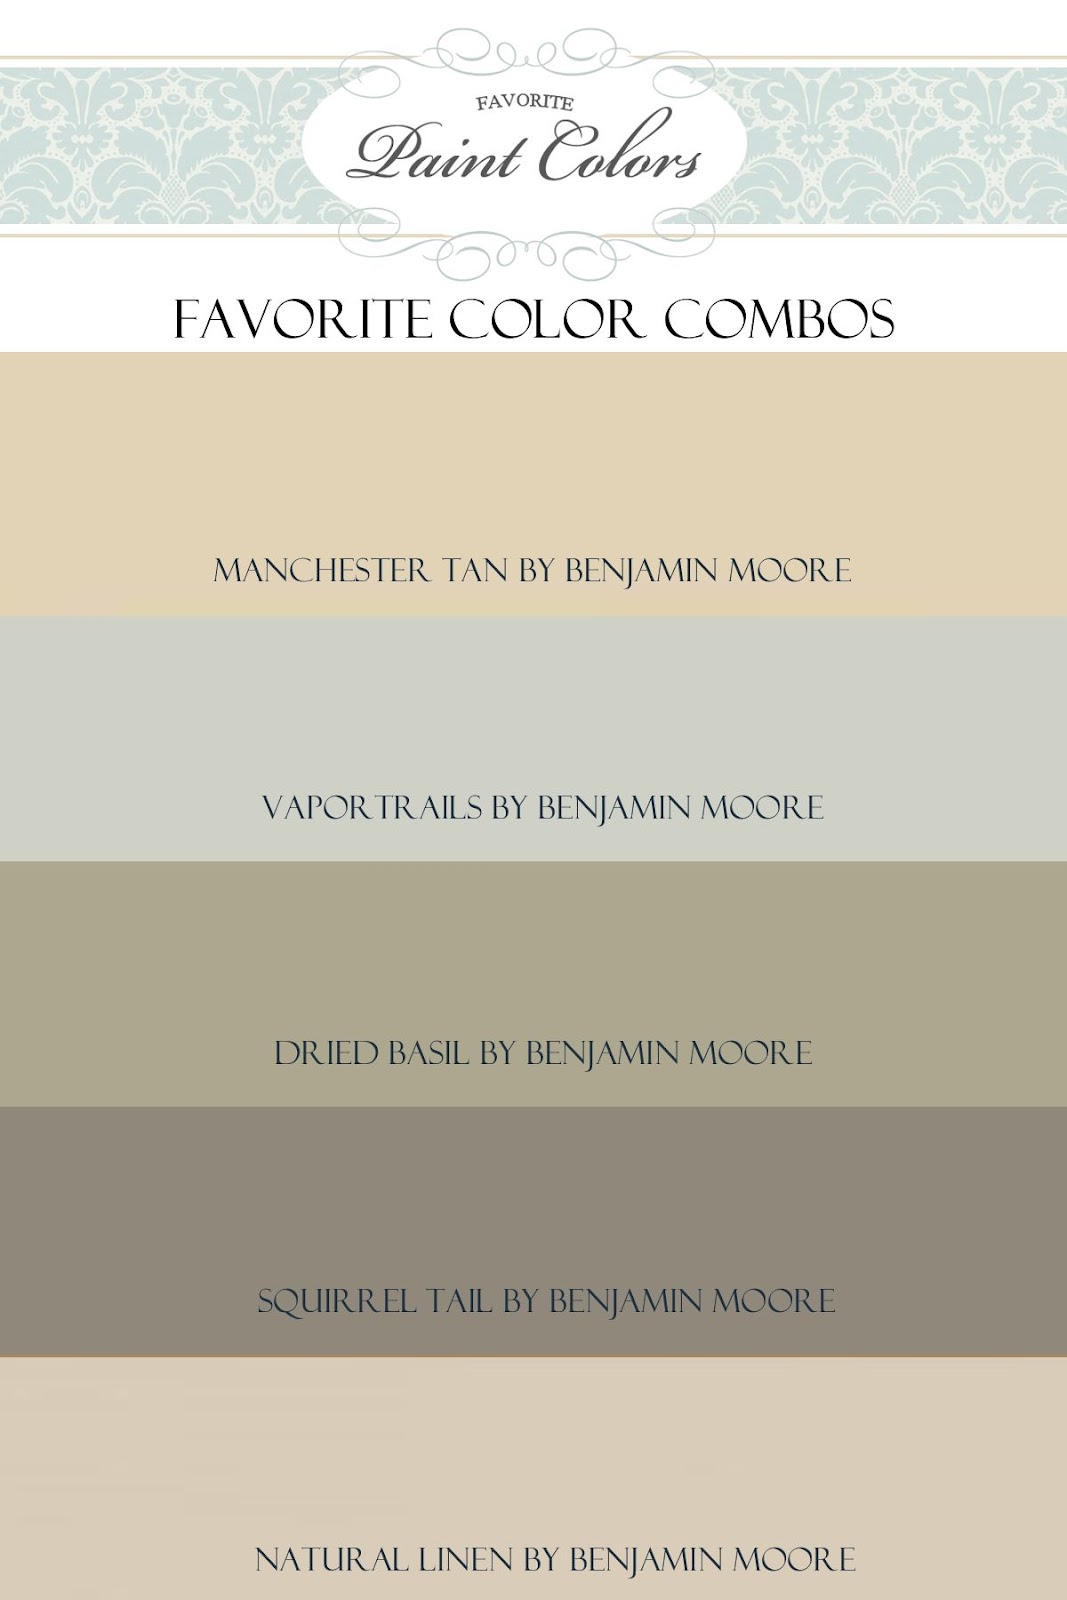 Favorite paint colors june 2012 for Most popular tan paint color